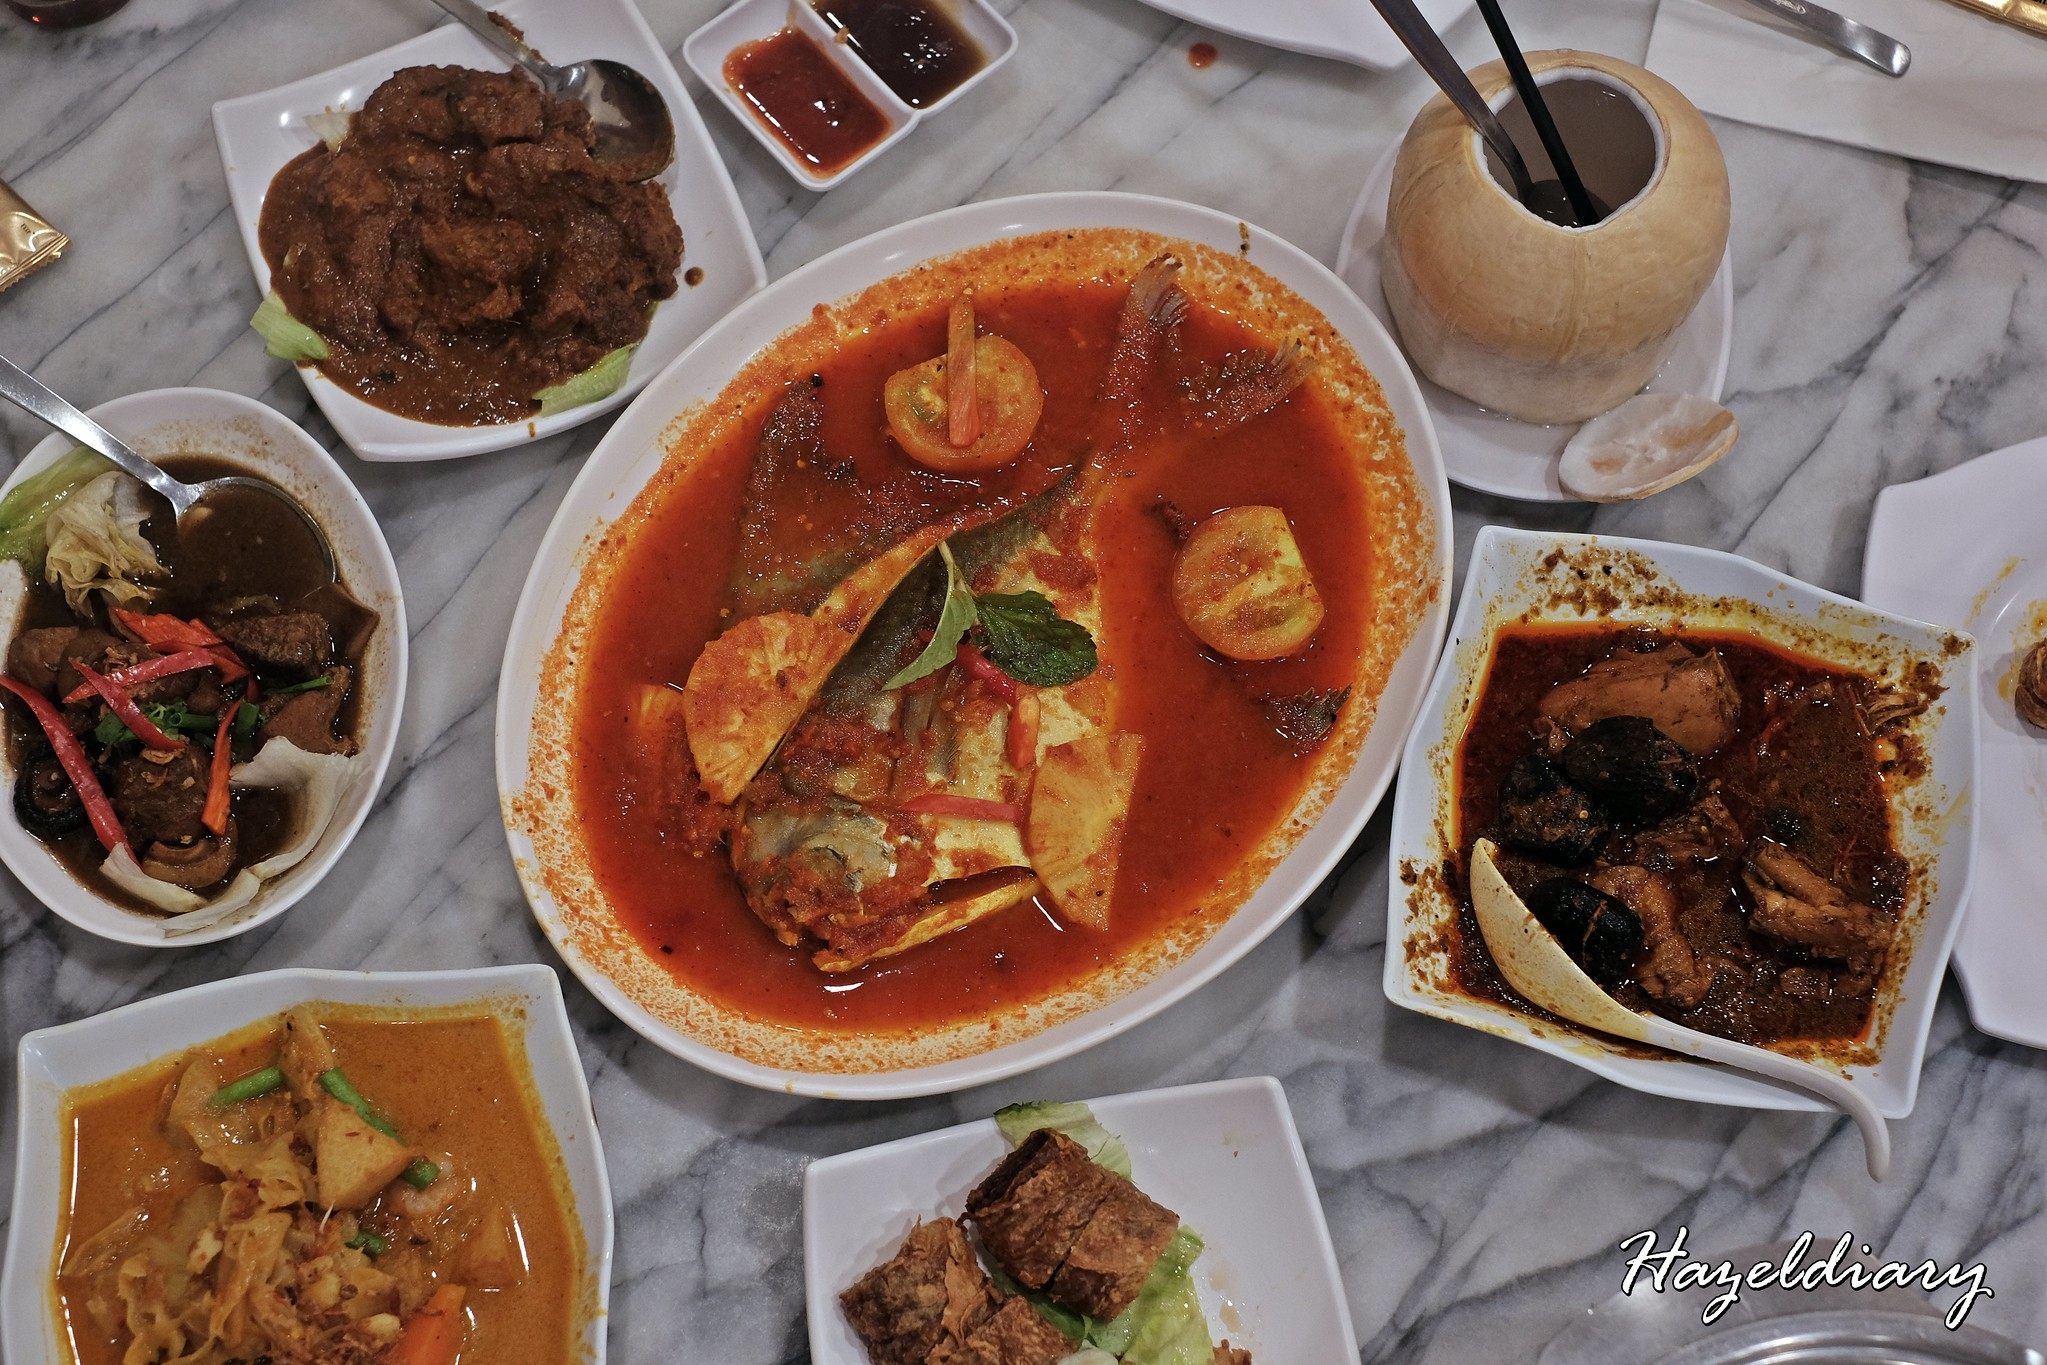 [SG EATS] Dinner At Guan Hoe Soon Restaurant – Peranakan Restaurant in Joo Chiat Place